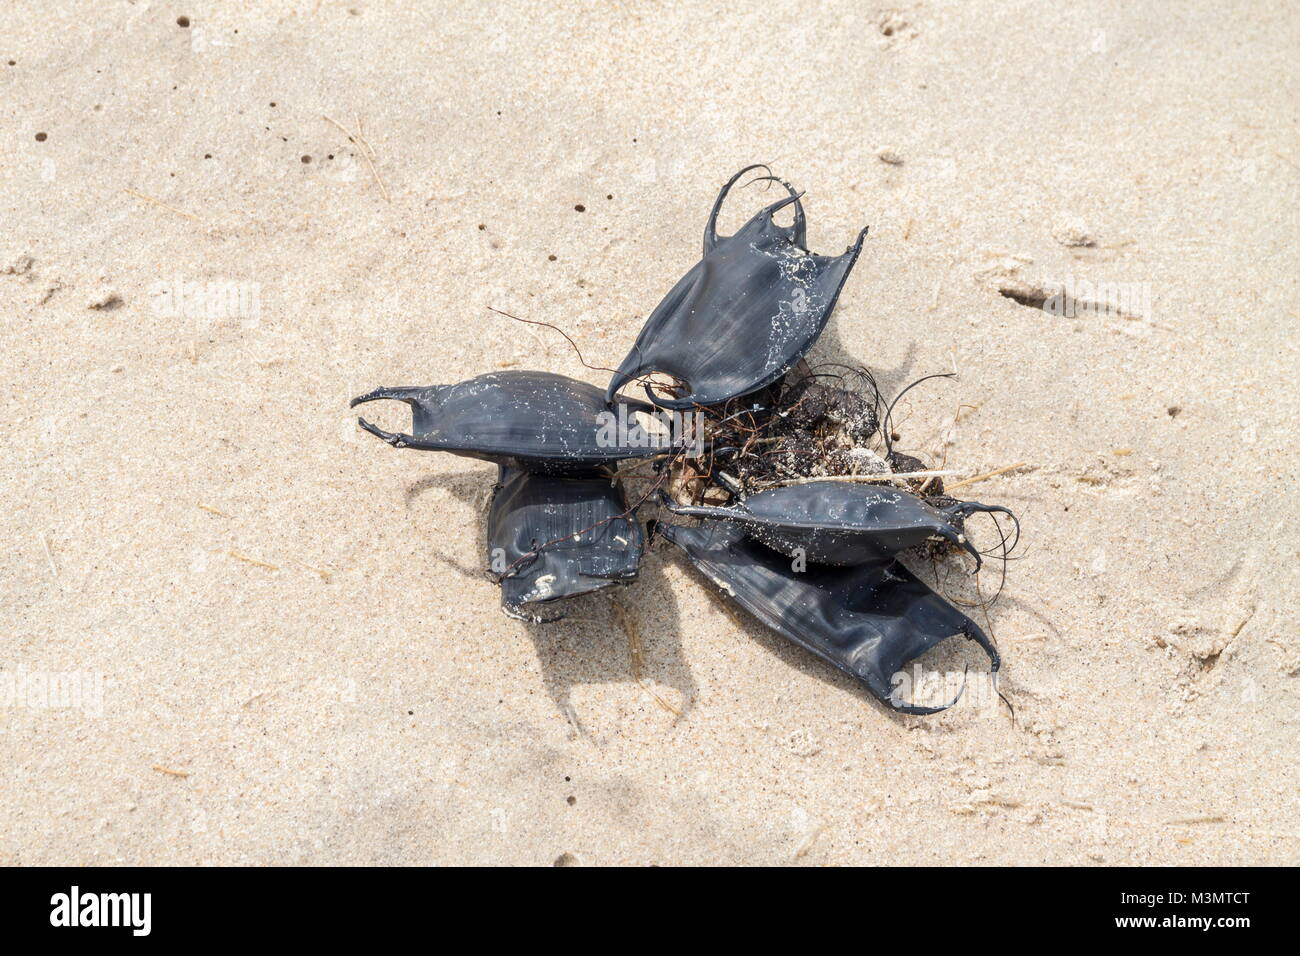 An entanglement of Ray egg cases washed-up on the baech on the Outer Banks, North Carolina - Stock Image